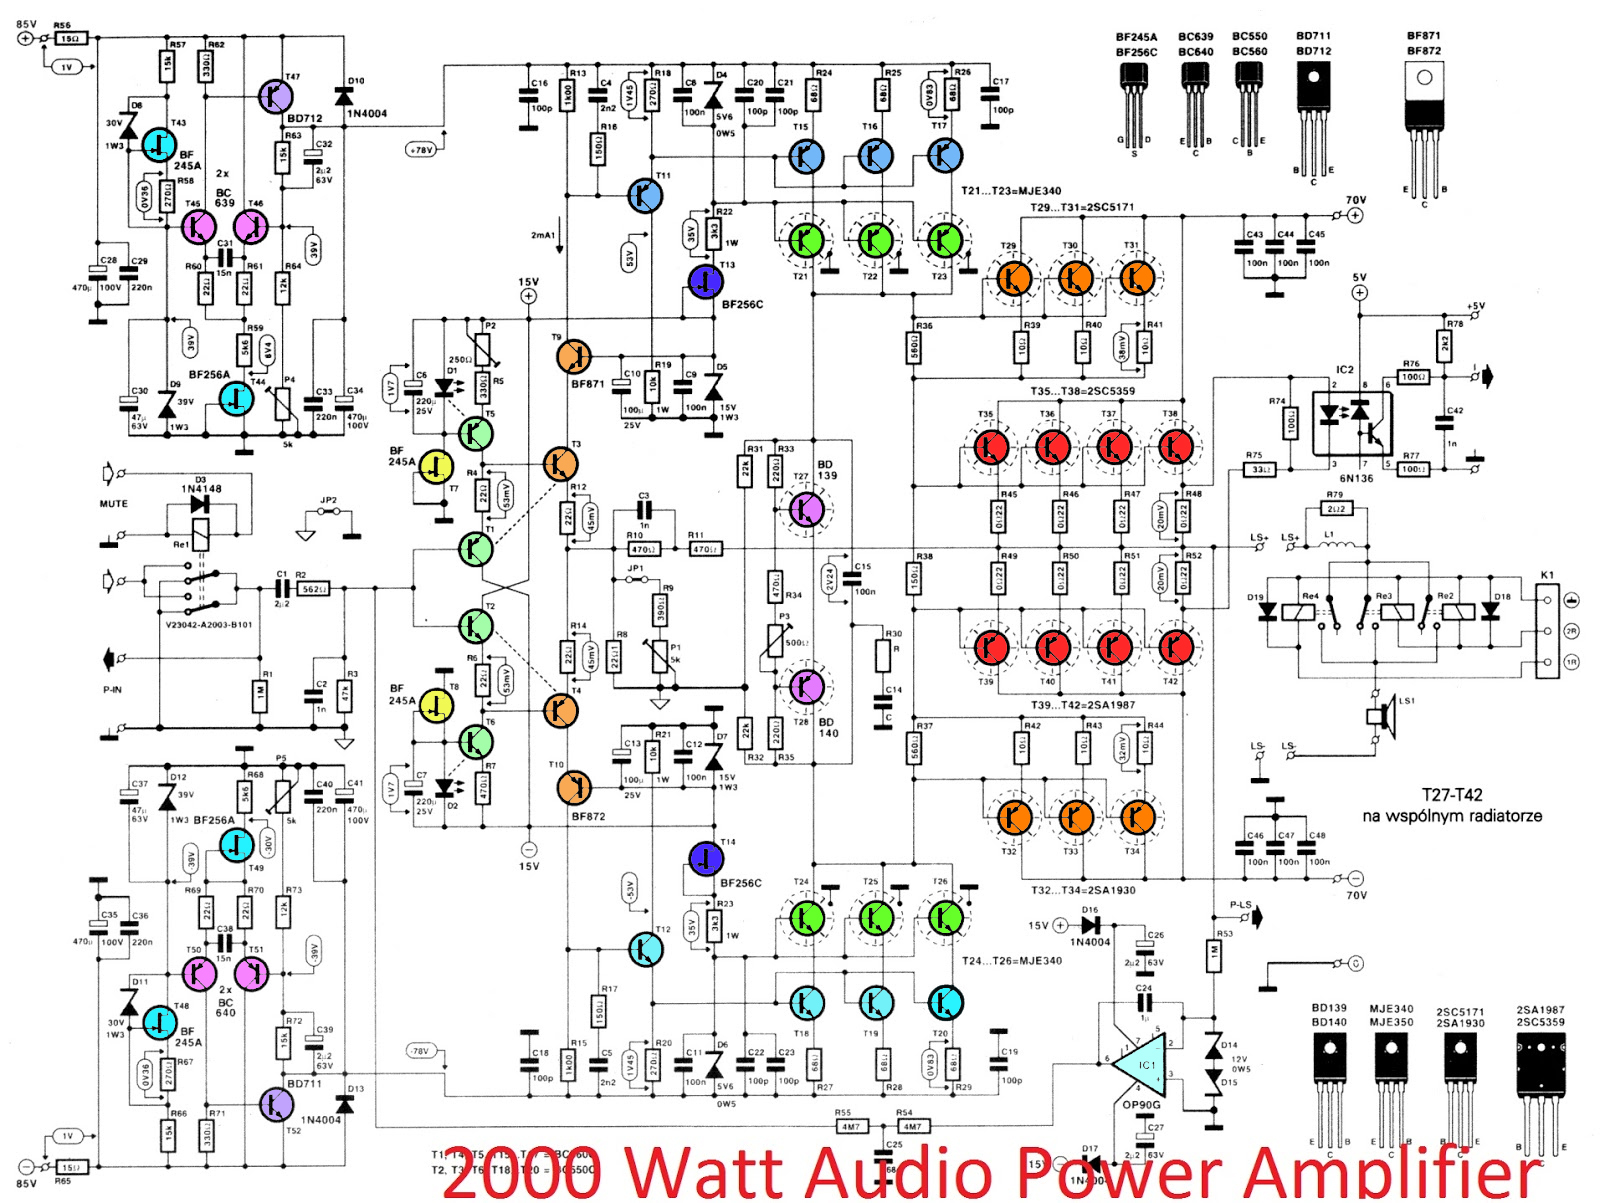 high voltage circuit diagram advantages and disadvantages of star topology 2000w power amplifier 2sc5359 2sa1987 electronic